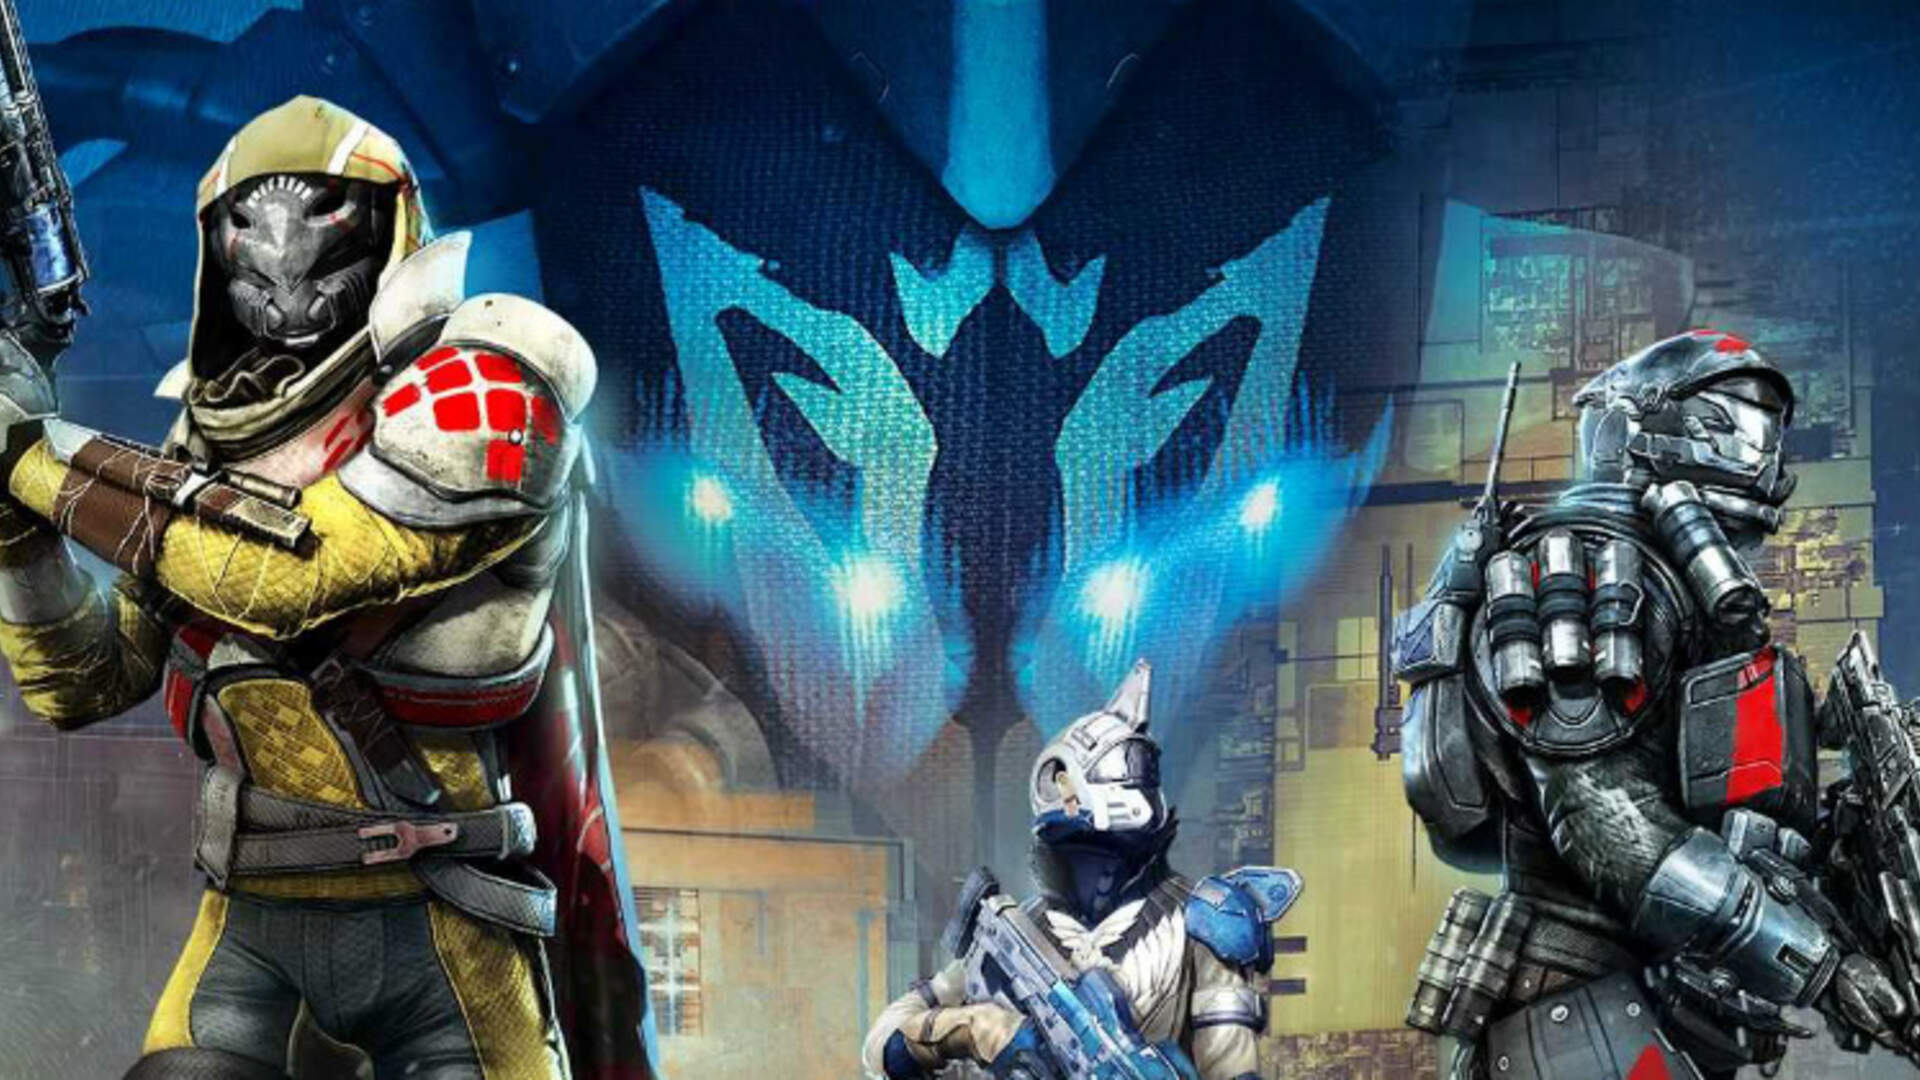 Destiny Suffers From a Content Lull, Just Like Every Other MMO